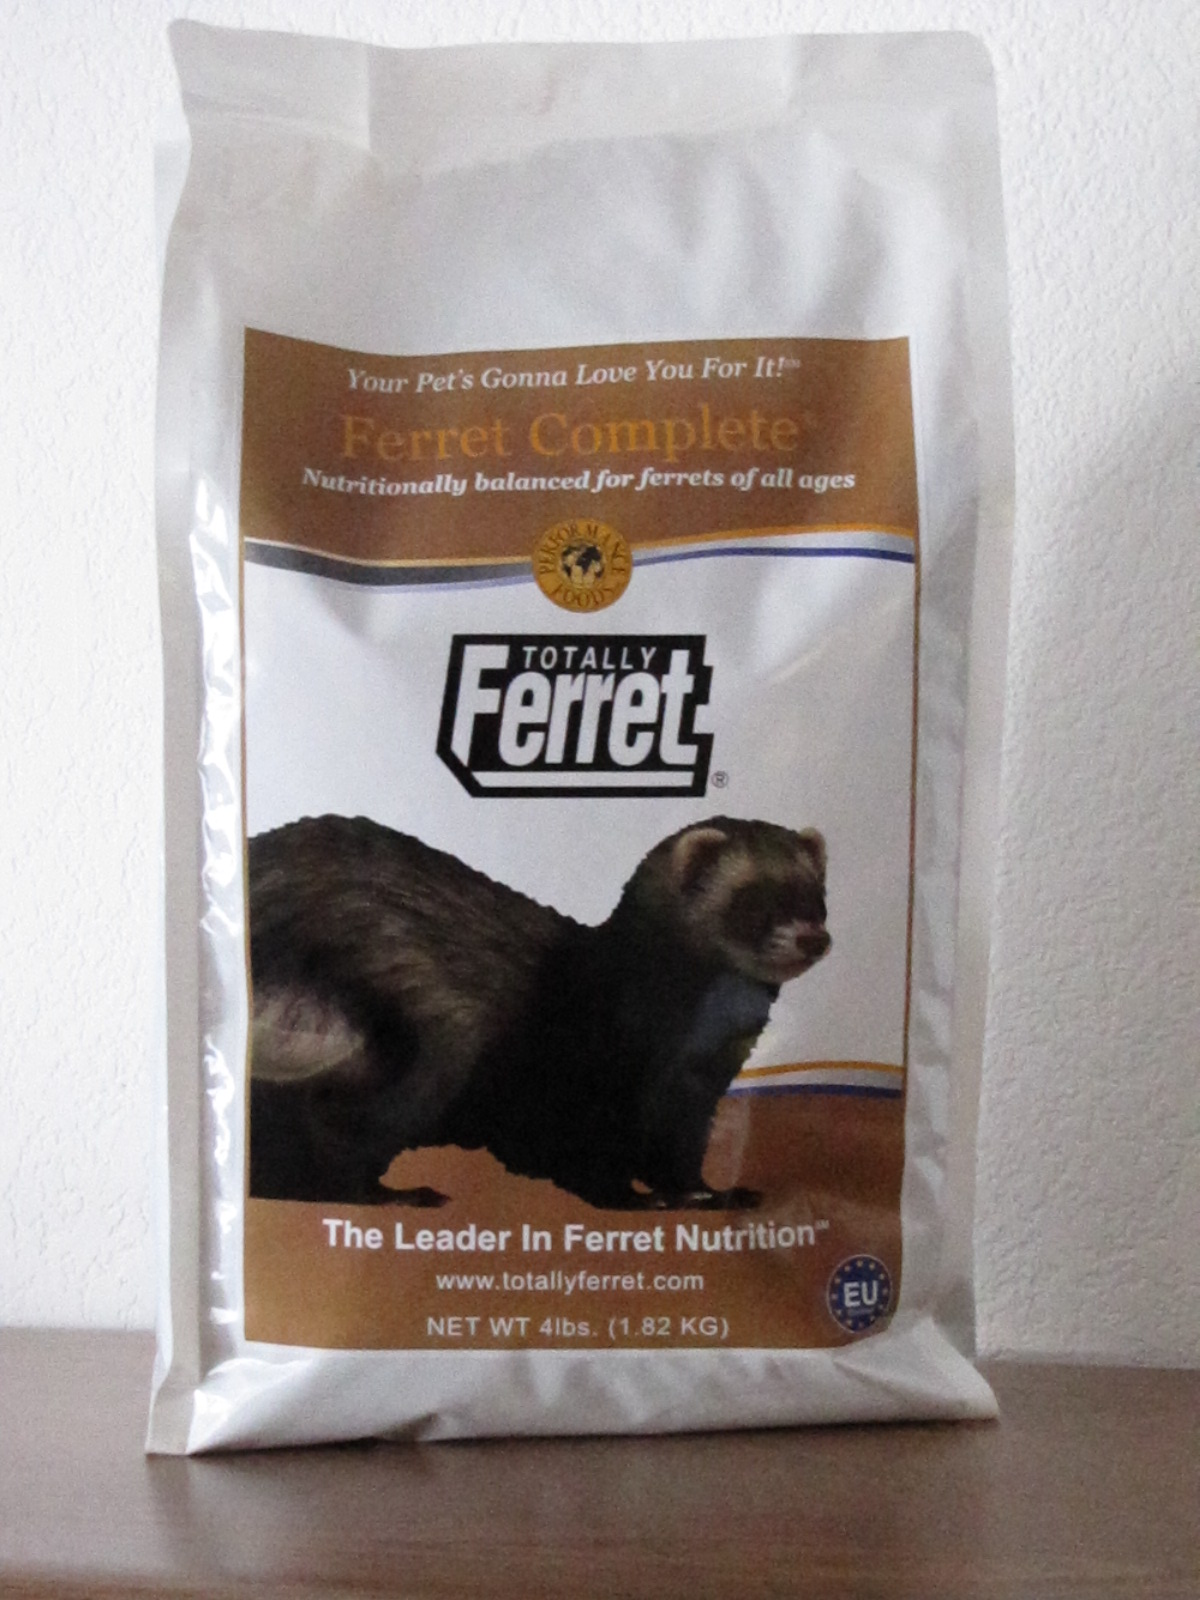 01704 Totally Ferret Complete, 4 lb bag